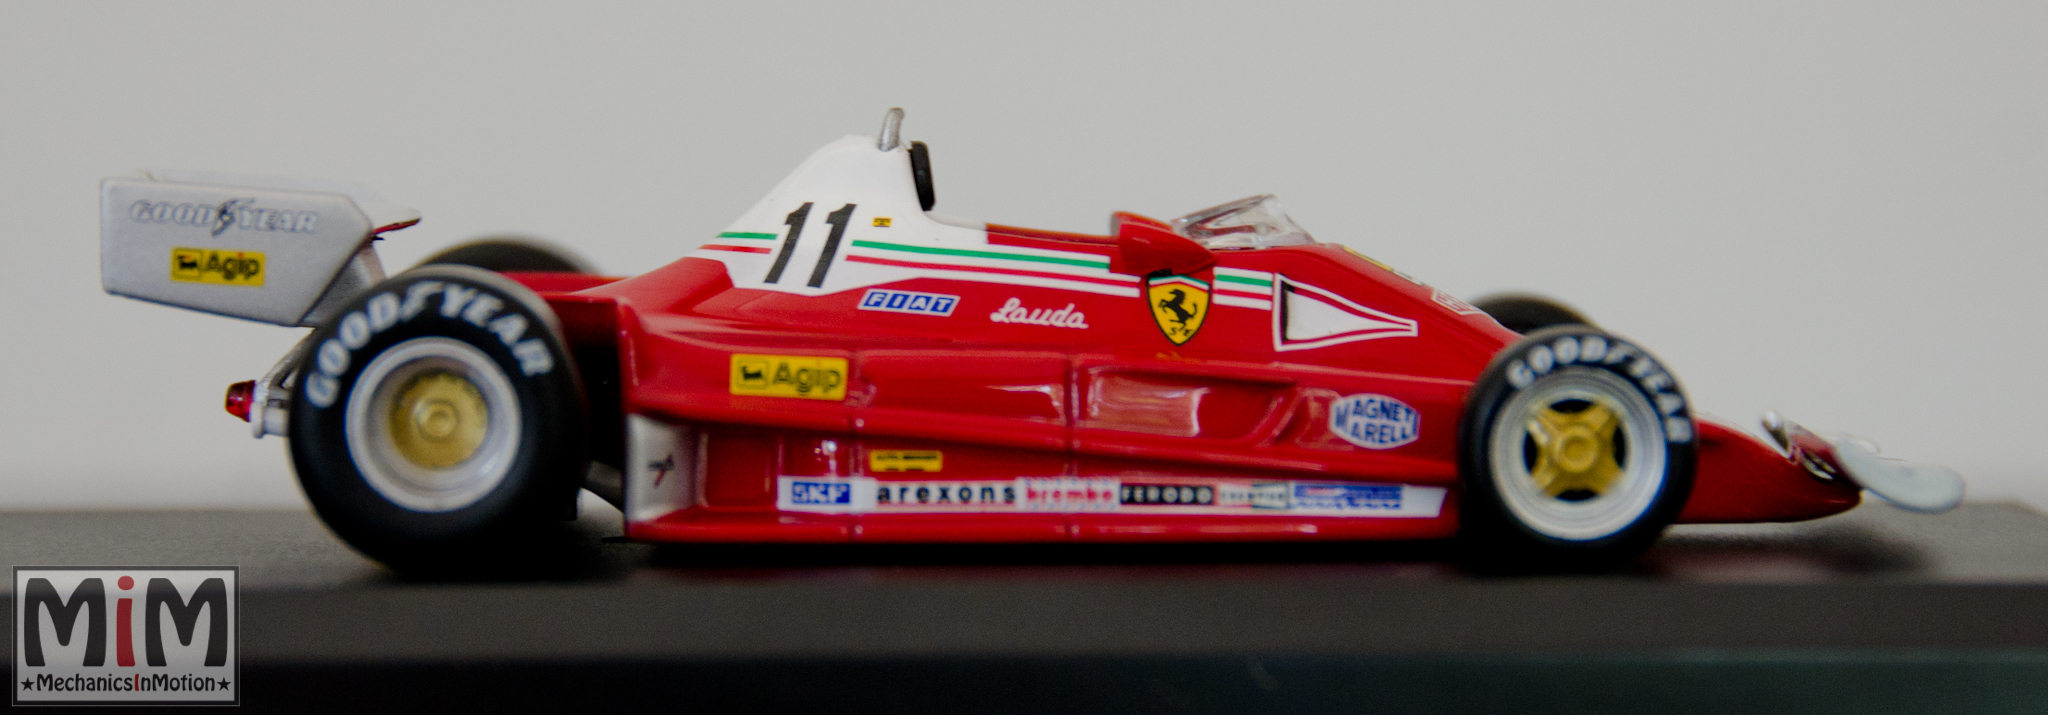 Technical Marketing likewise 1606 moreover Collection Ferrari F1 Au 1 43e Editions Fabbri together with Webber picks up a hitchhiker as well A Tribute To Gilles Villeneuve. on michael arnoux